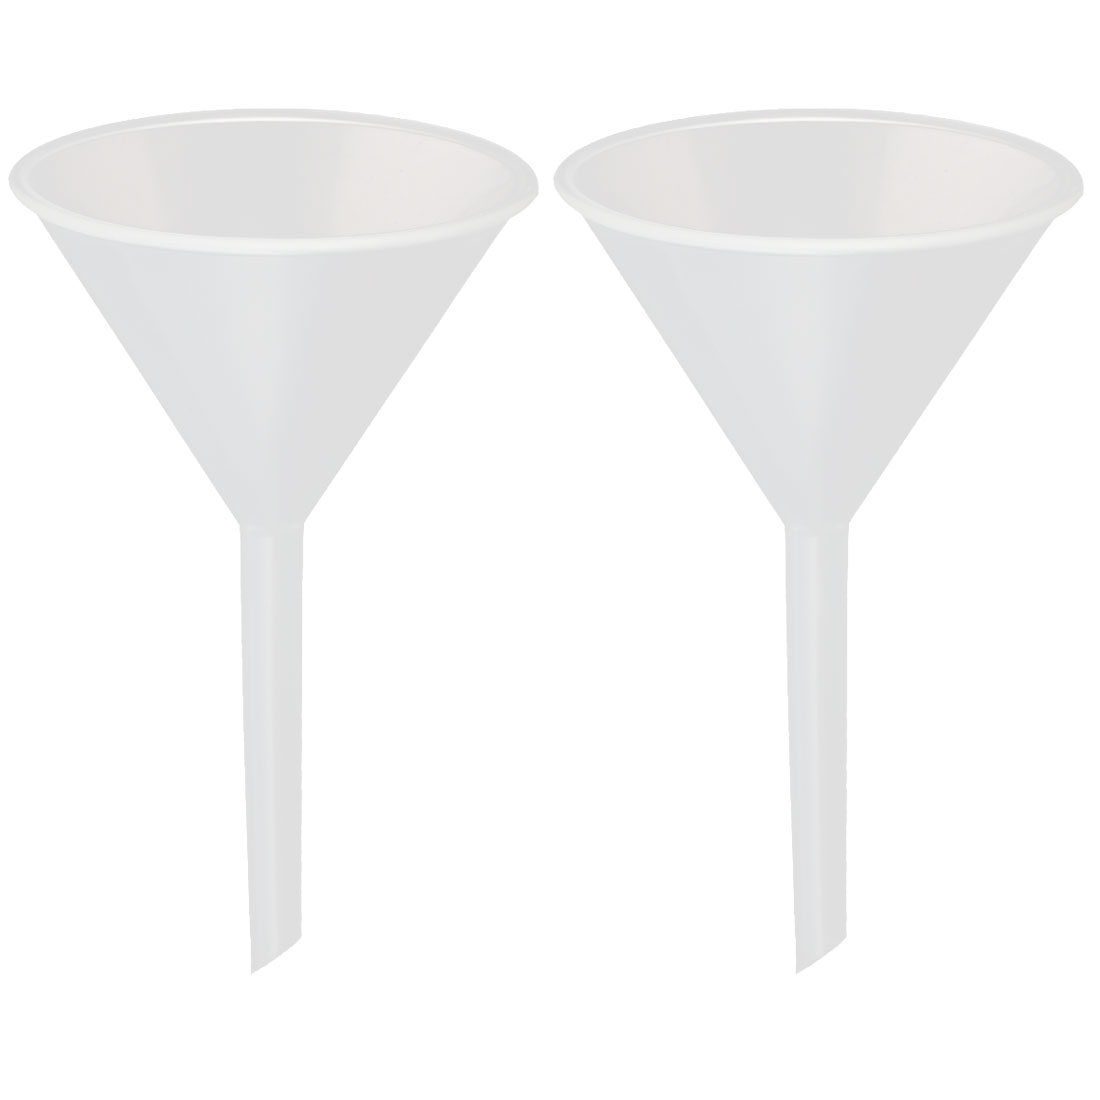 2pcs 55mm Mouth Dia Household Lab Water Oil Plastic Funnel Transfer Filling Tool by Unique-Bargains